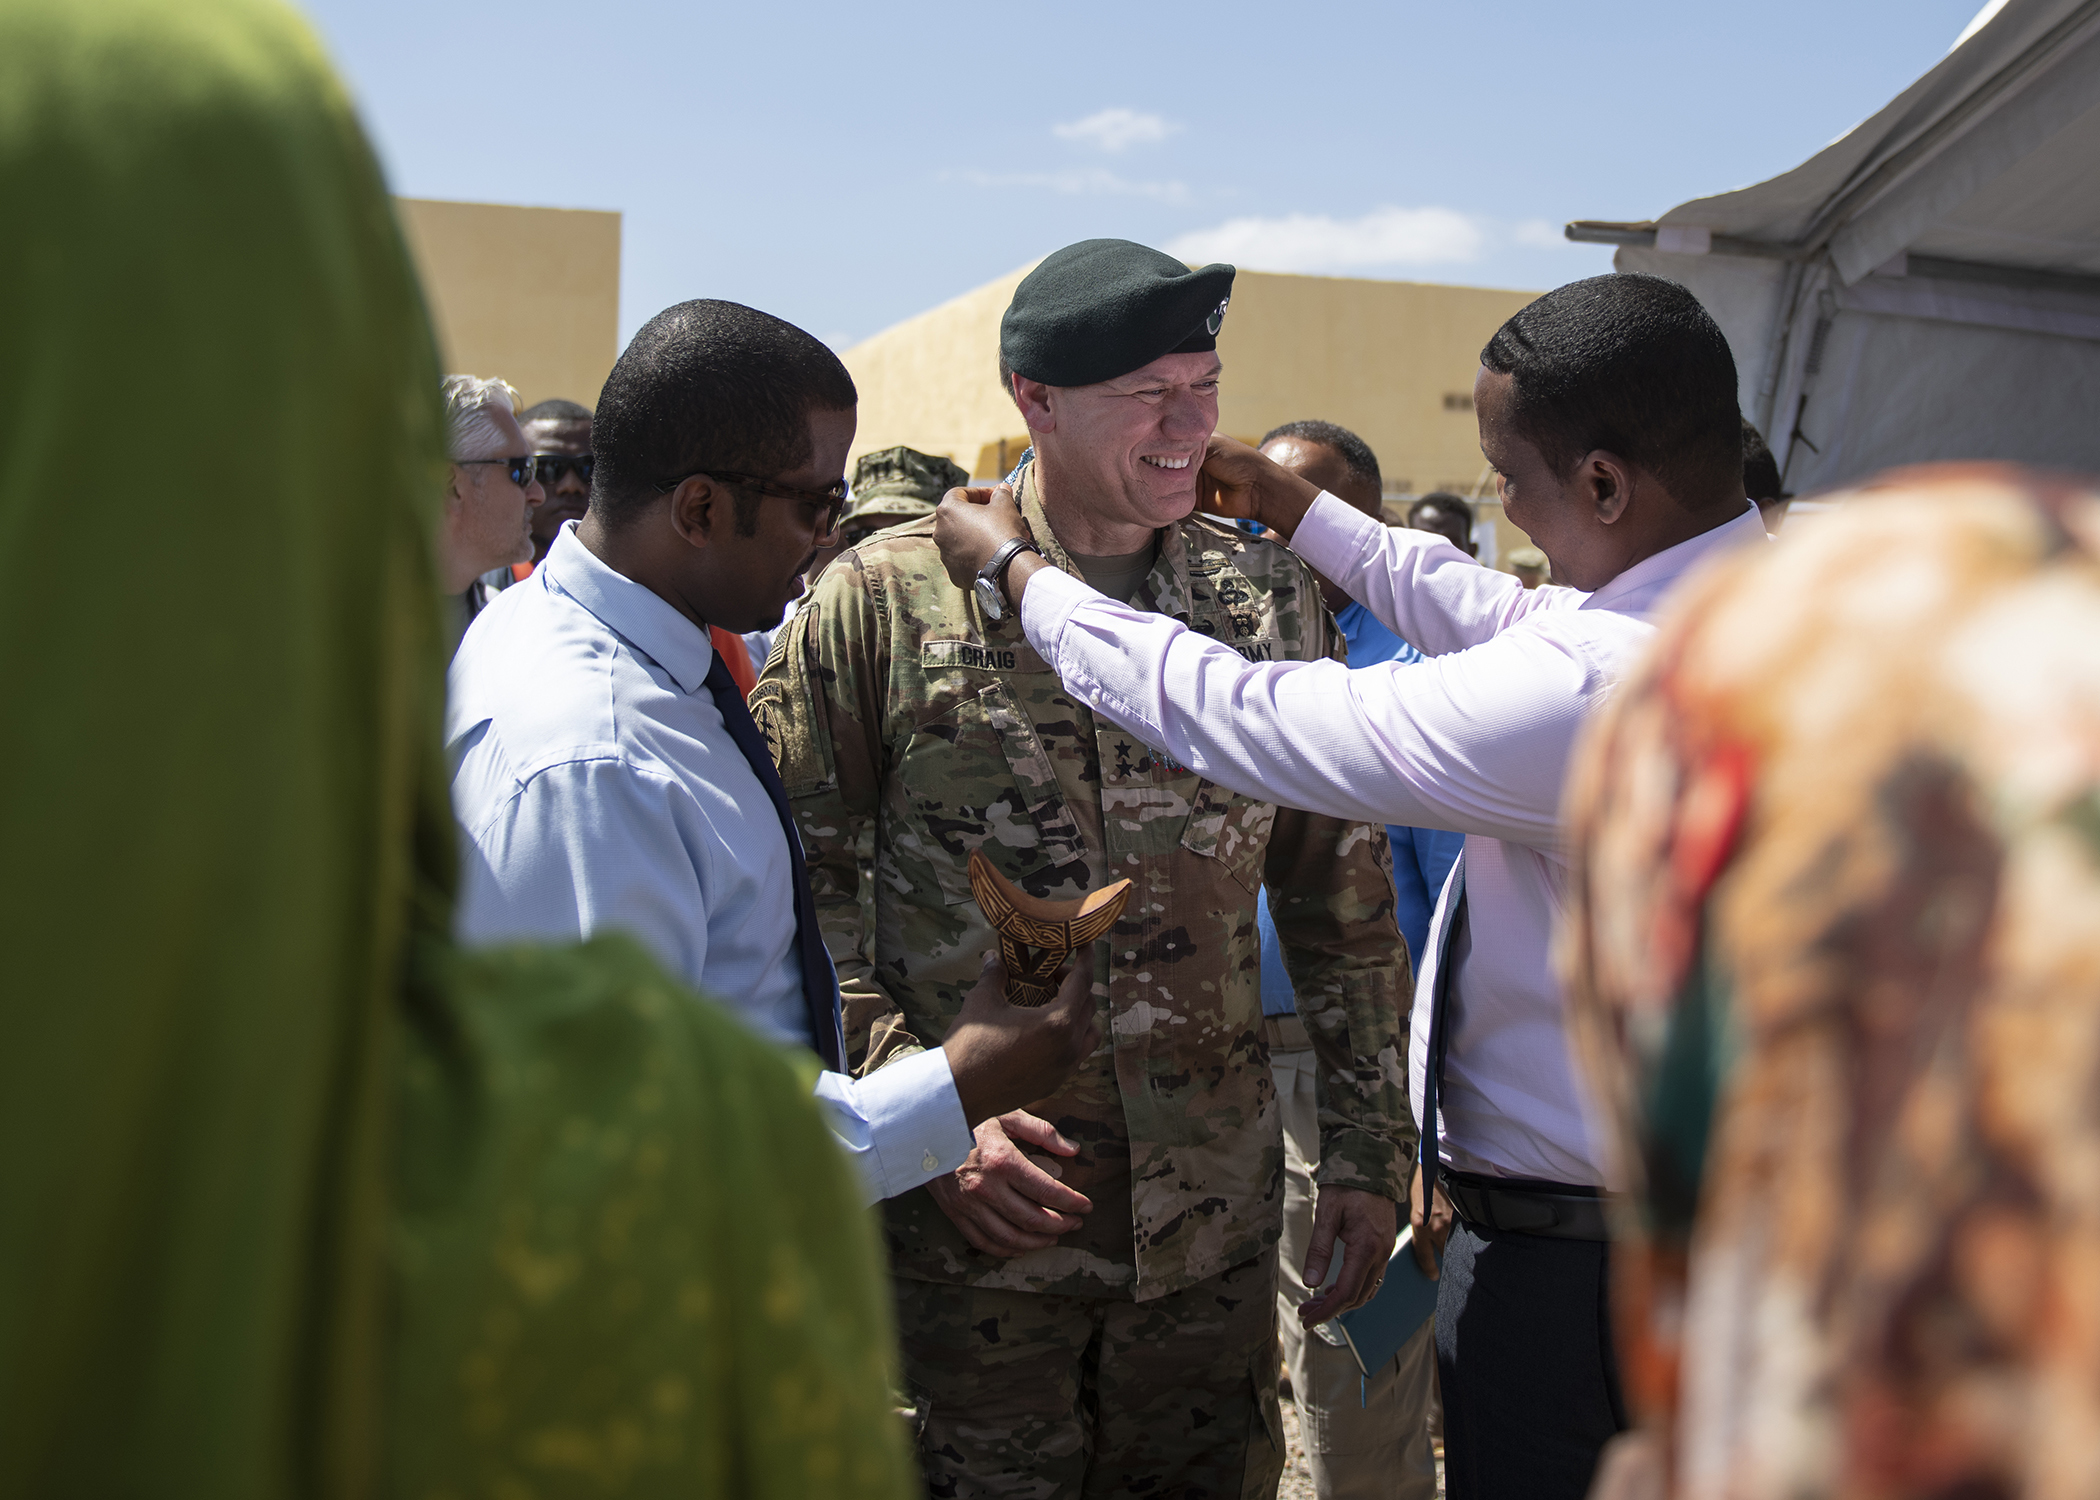 U.S. Army Maj. Gen. James D. Craig, commanding general, Combined Joint Task Force-Horn of Africa (CJTF-HOA), receives a gift from Djiboutian government officials during the Ali Oune Medial Clinic ribbon cutting ceremony in Ali Oune, Djibouti, Jan. 31, 2019. The clinic, which U.S. Navy Seabees from Naval Mobile Construction Battalion 1, assigned to CJTF-HOA, have been working to complete for five months, is intended to enhance the Ministry of Health for Djibouti's ability to provide basic medical, birth and after care to the Ali Oune village and its more than 1,000 residents and rural neighbors. (U.S. Air Force photo by Tech. Sgt. Shawn Nickel)